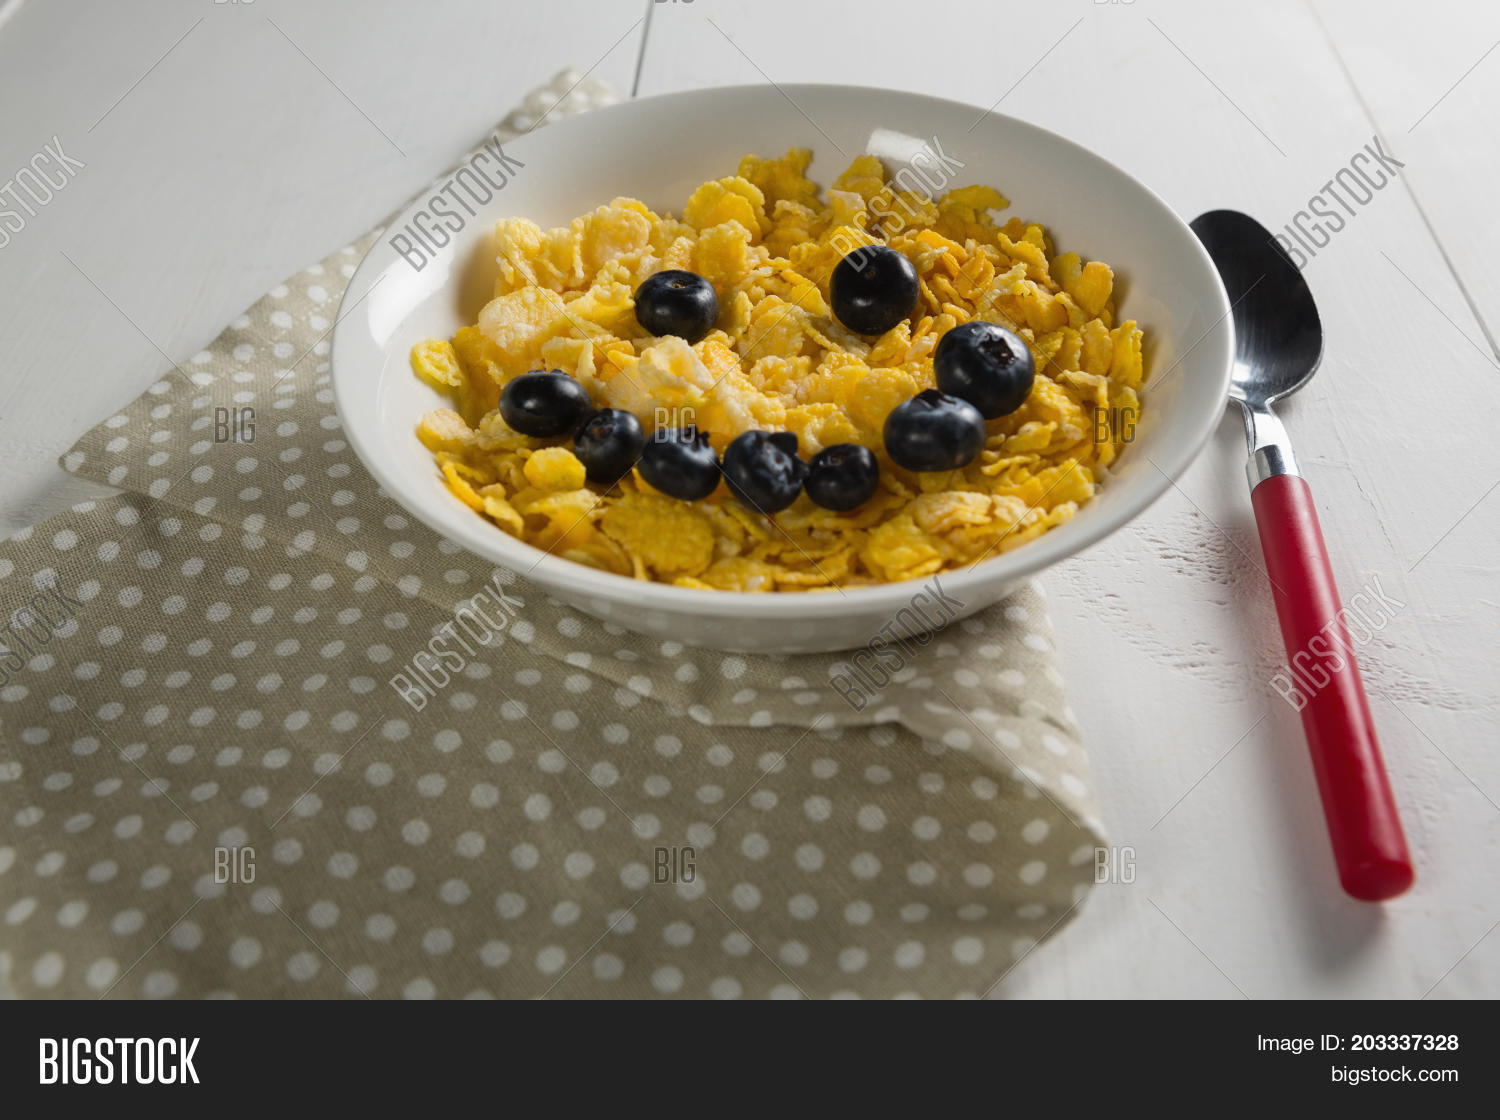 🔥 Wheaties cereal and blueberry in bowl